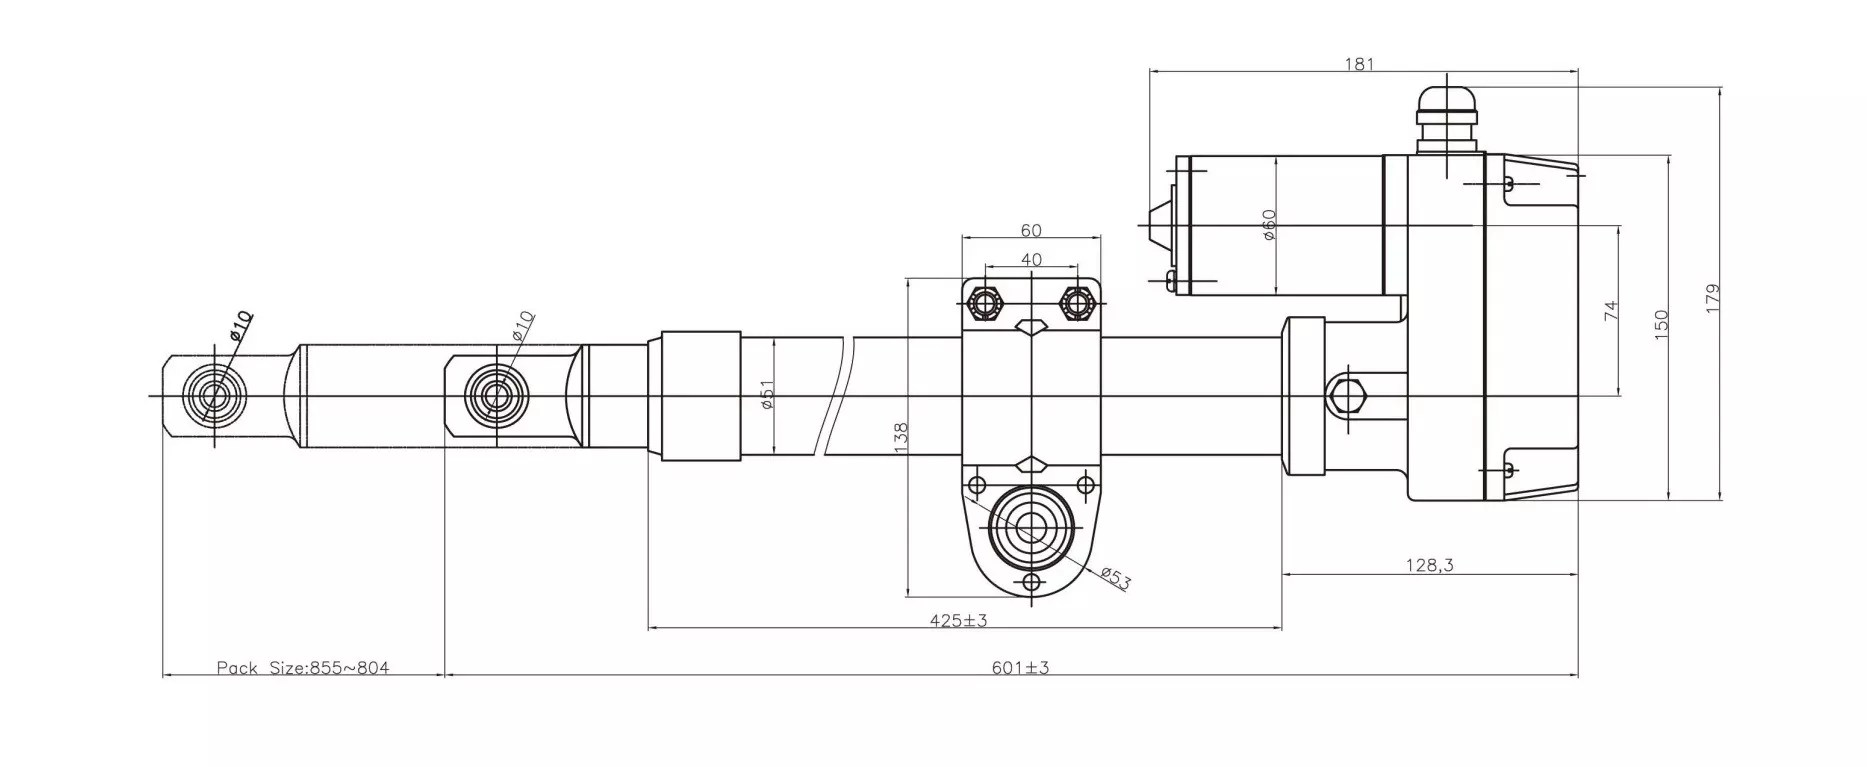 hight resolution of satellite dish actuator heavy duty type outline drawing